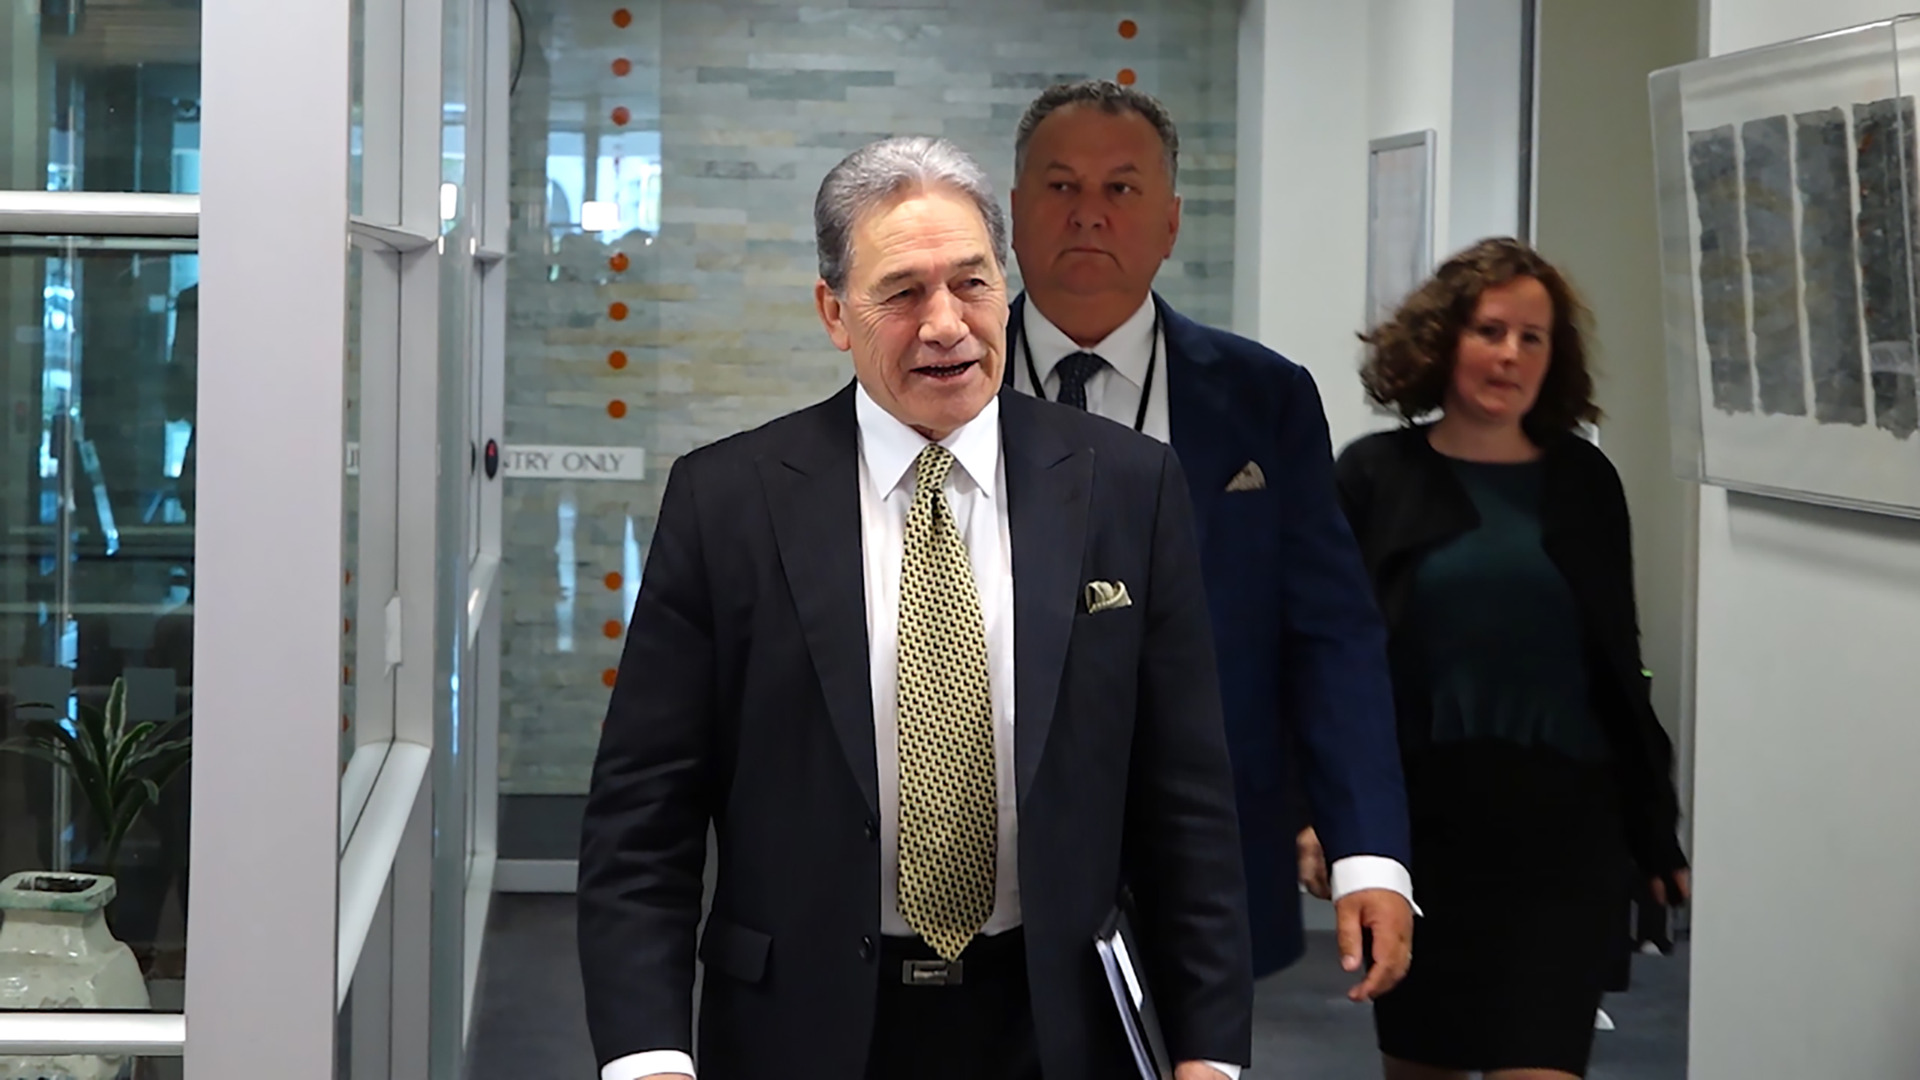 Live: Winston Peters to reveal investment plan for 'critical ' industry